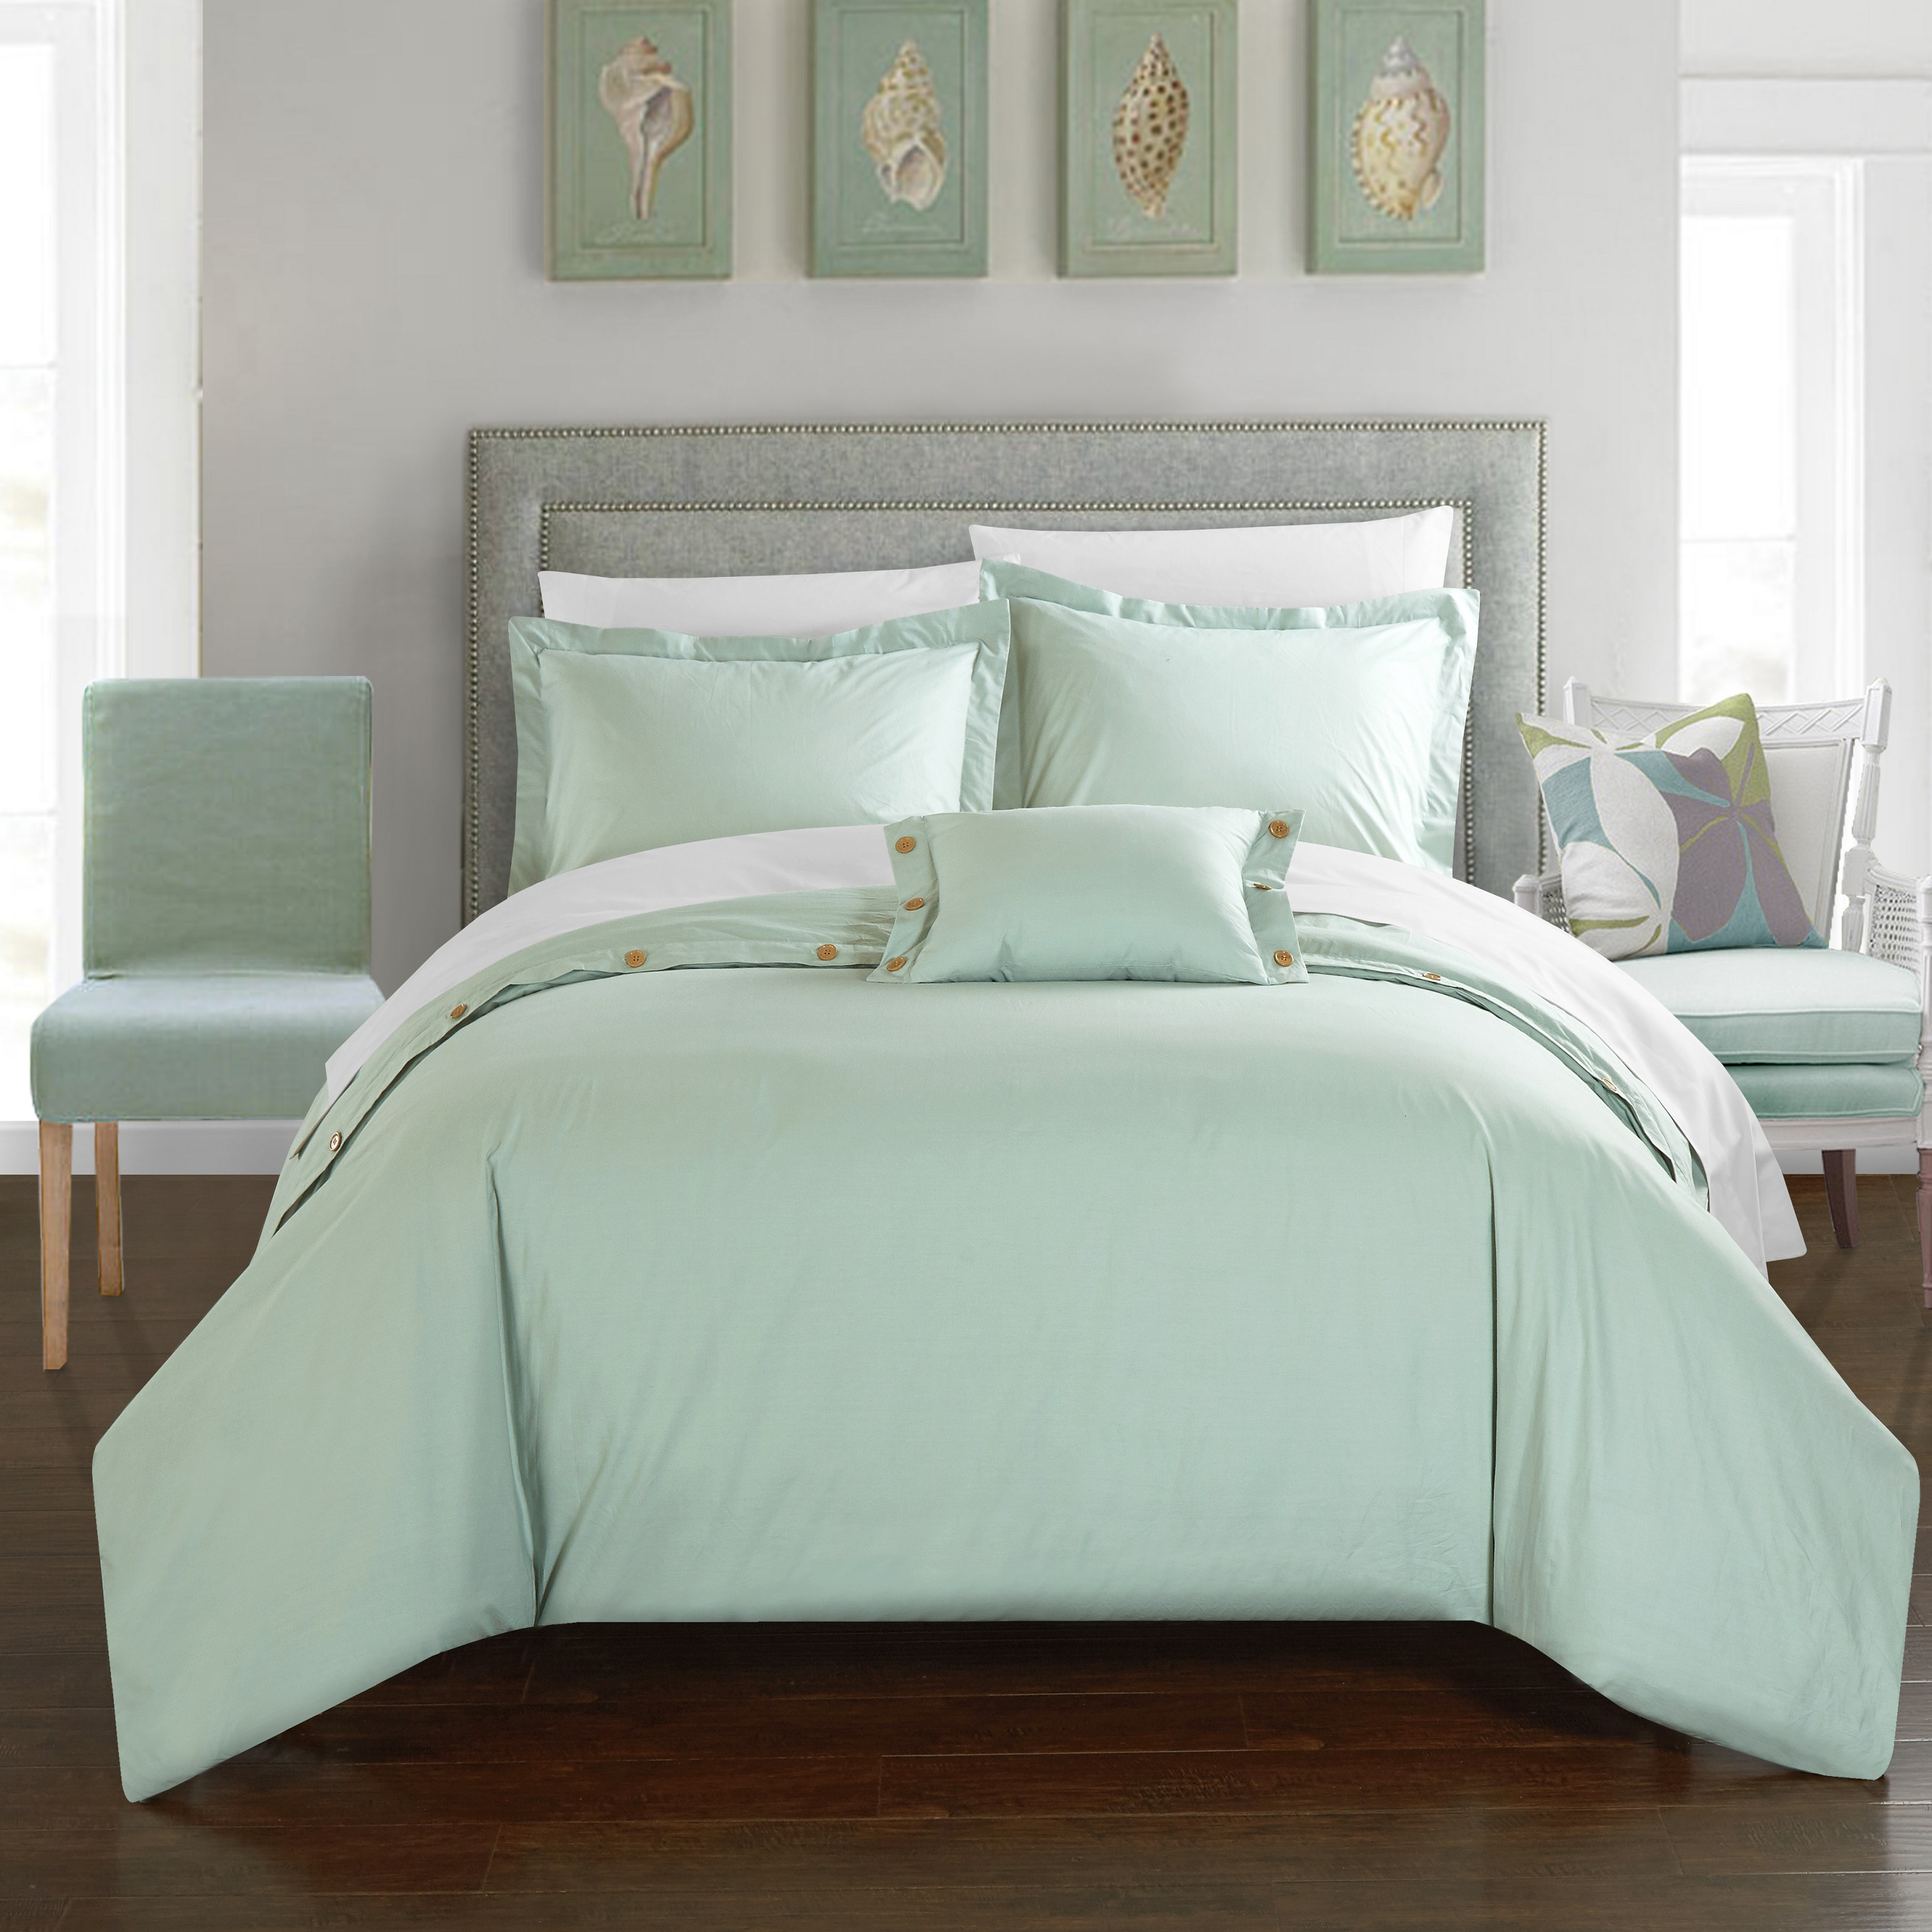 Chic Home 8-Piece Astrid 200 Thread Count COMBED FINISH 100% Cotton Twill Weave Decorative Button Closure Detail Queen Bed In a Bag Duvet Set Aqua With sheet set